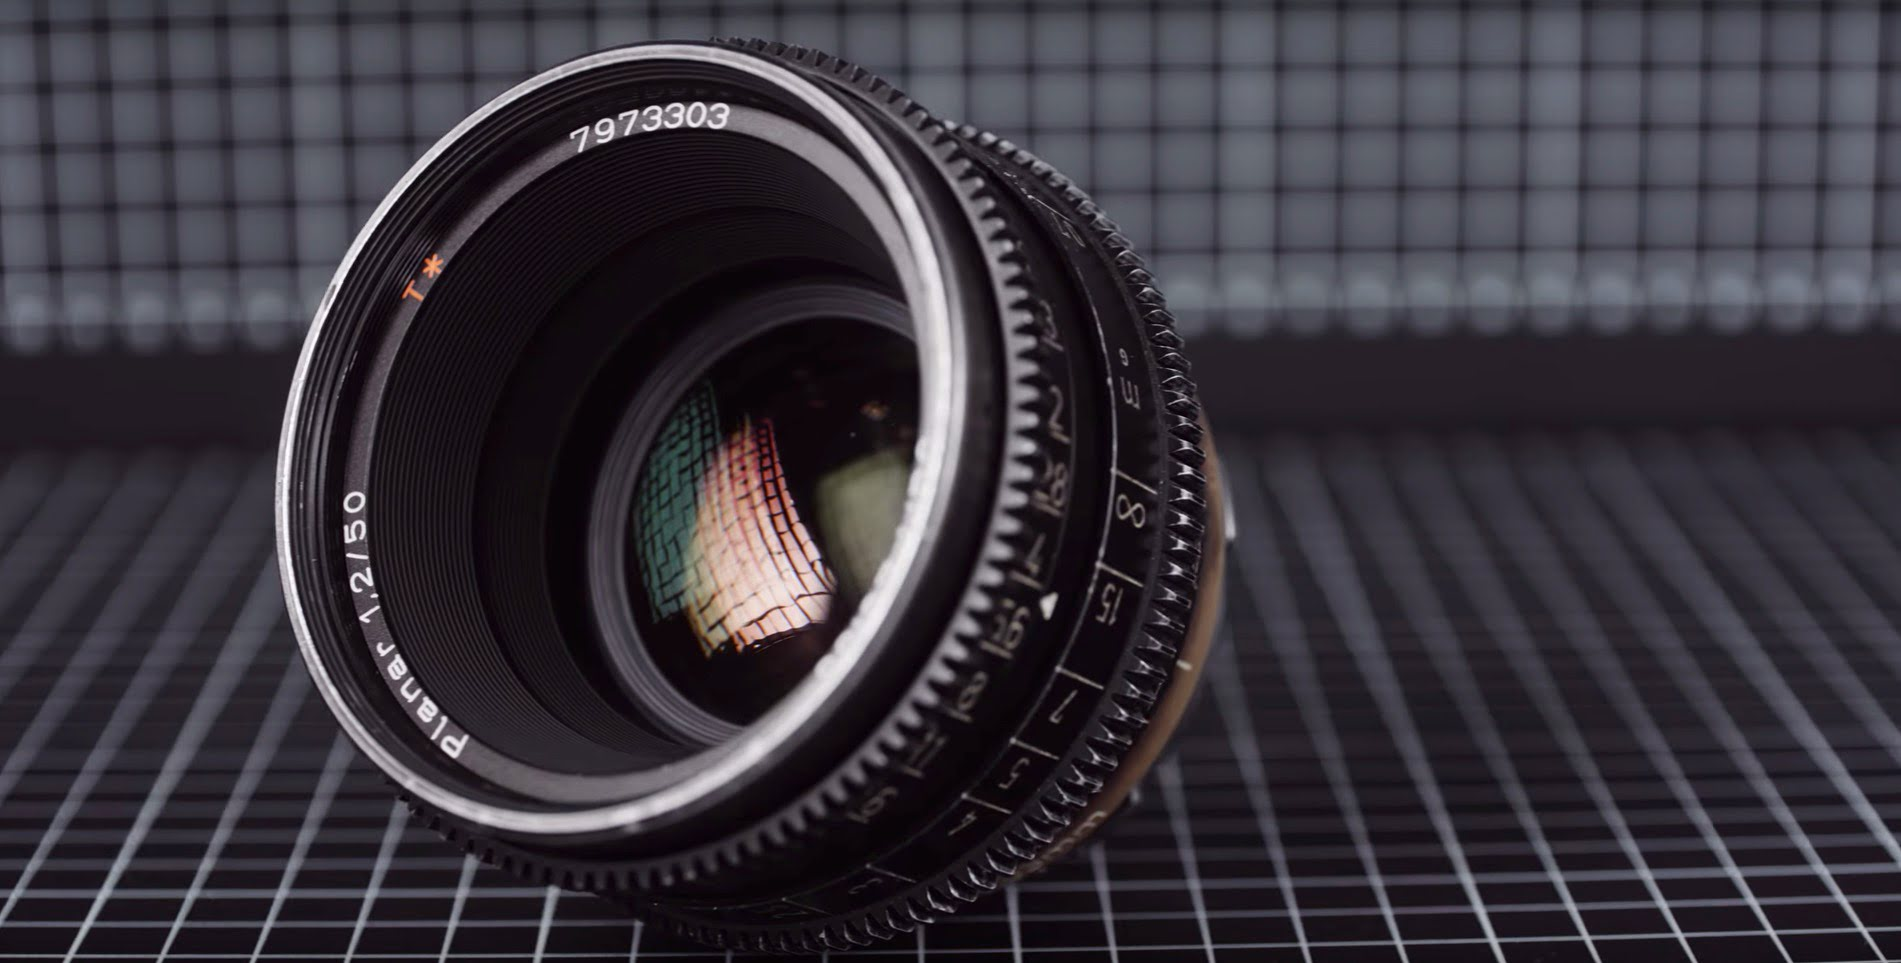 Legendary Contax Zeiss Super Speed Lenses